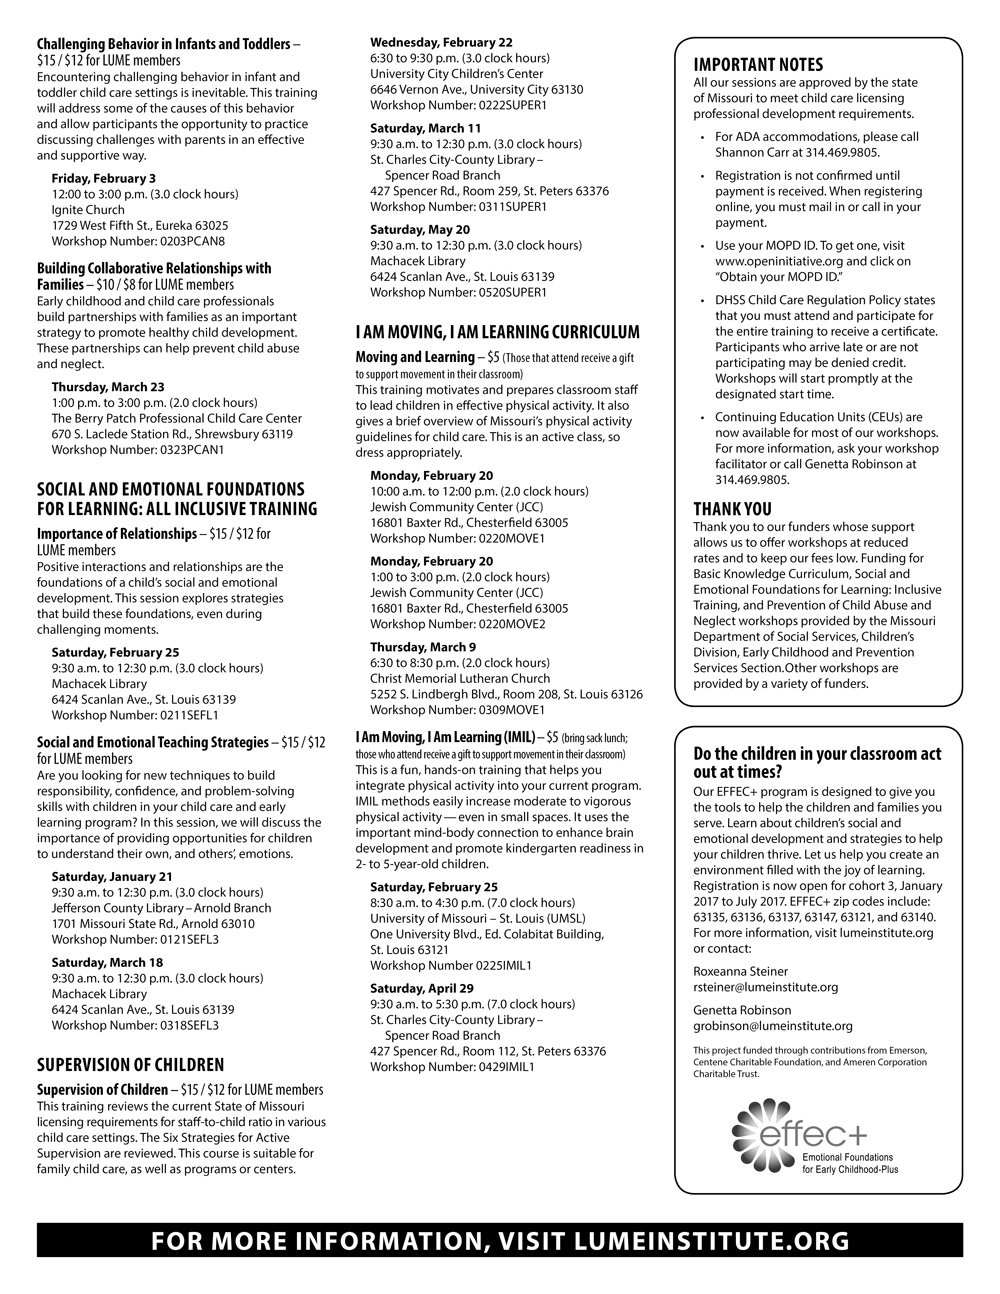 Upcoming early childhood workshops lume institute and neglect workshops provided by the missouri department of social services childrens division early childhood and prevention services section 1betcityfo Images